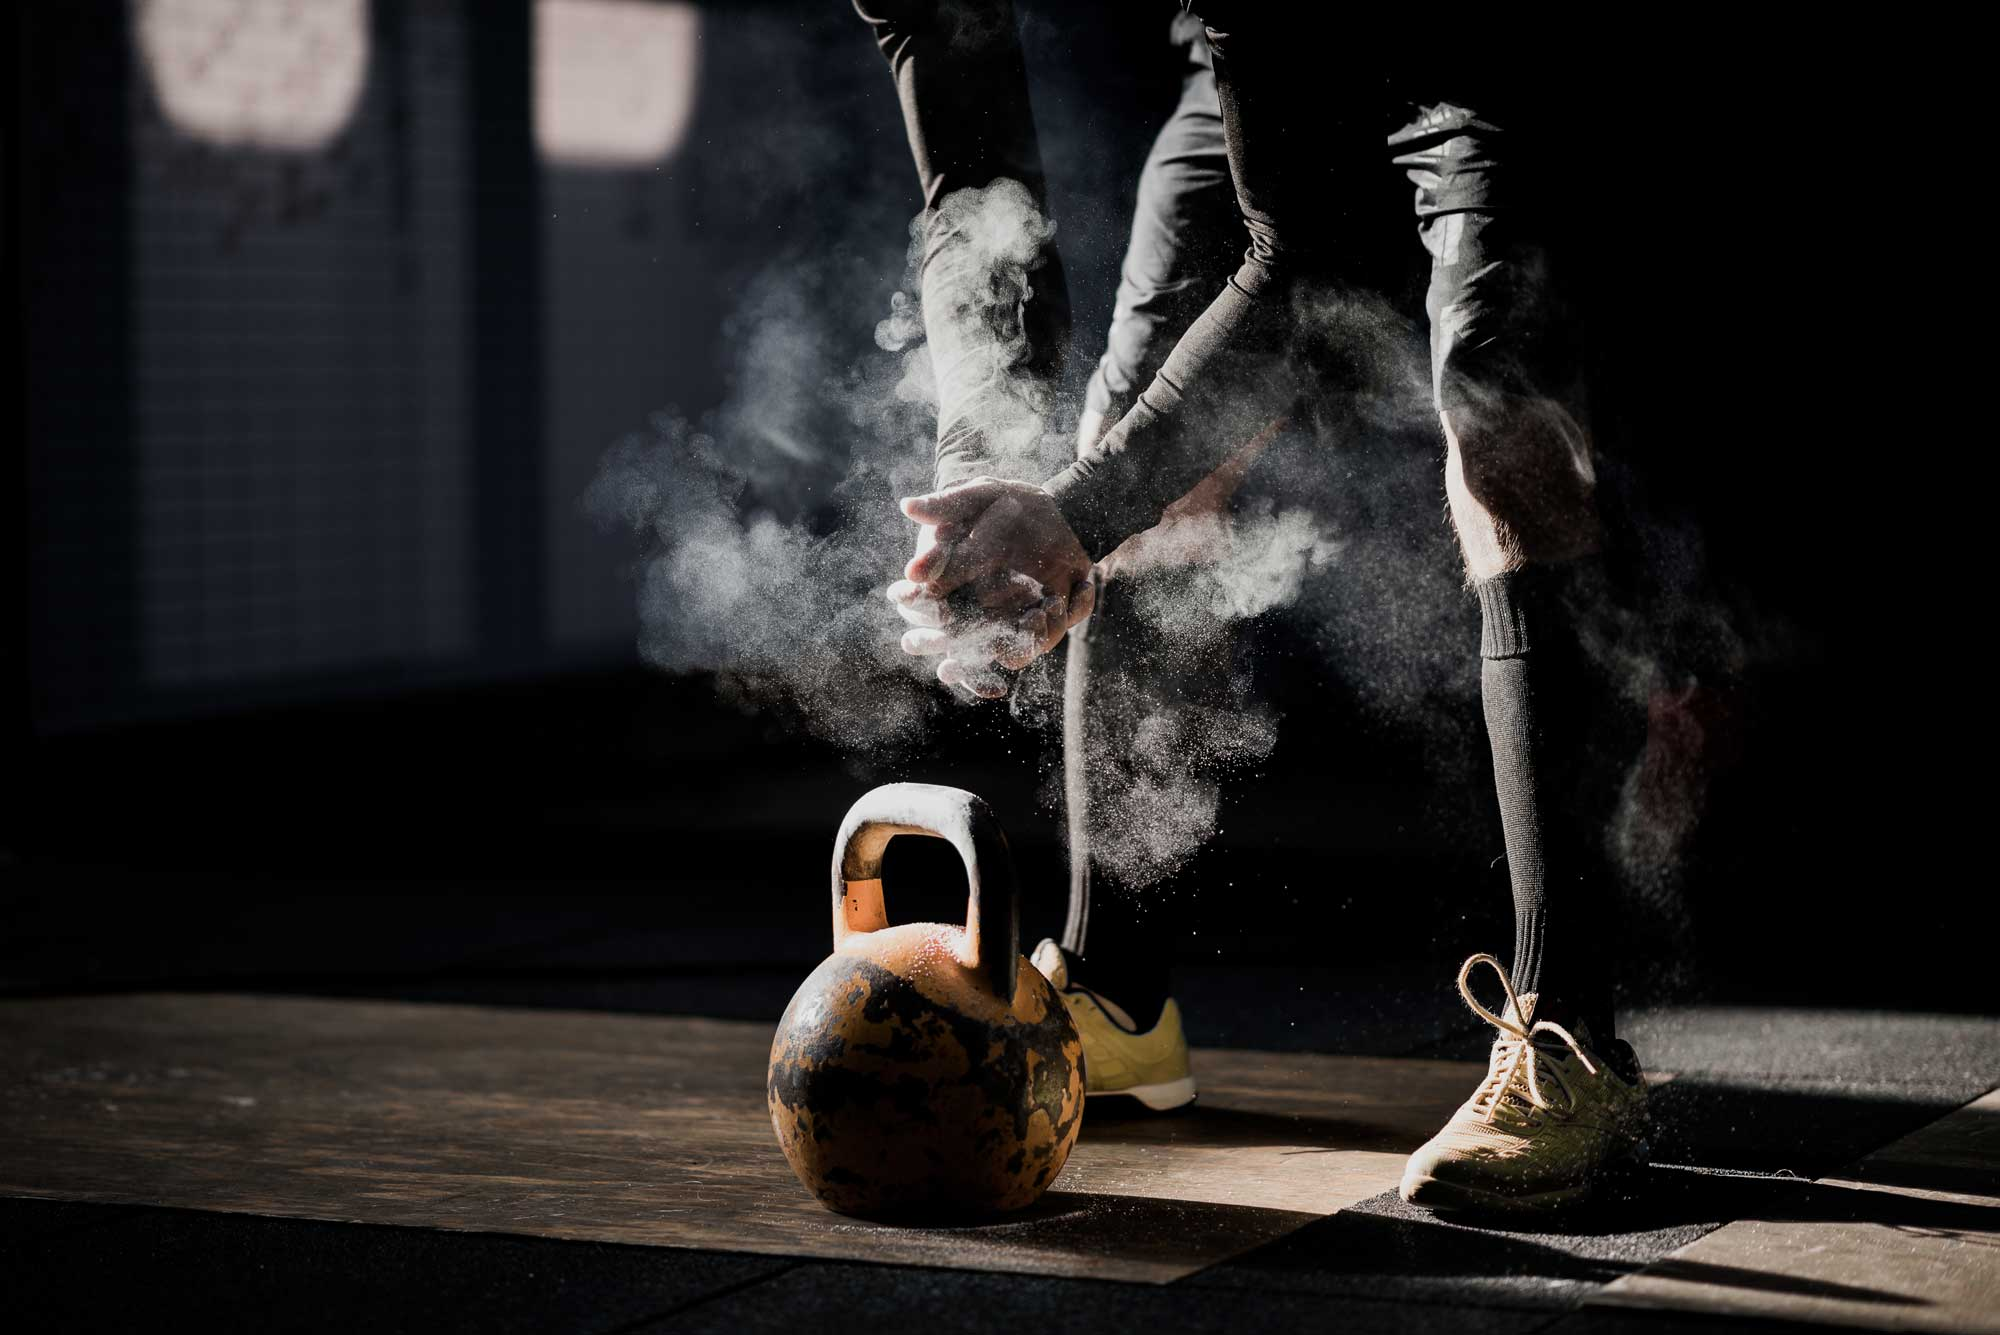 Man getting ready to lift kettlebell